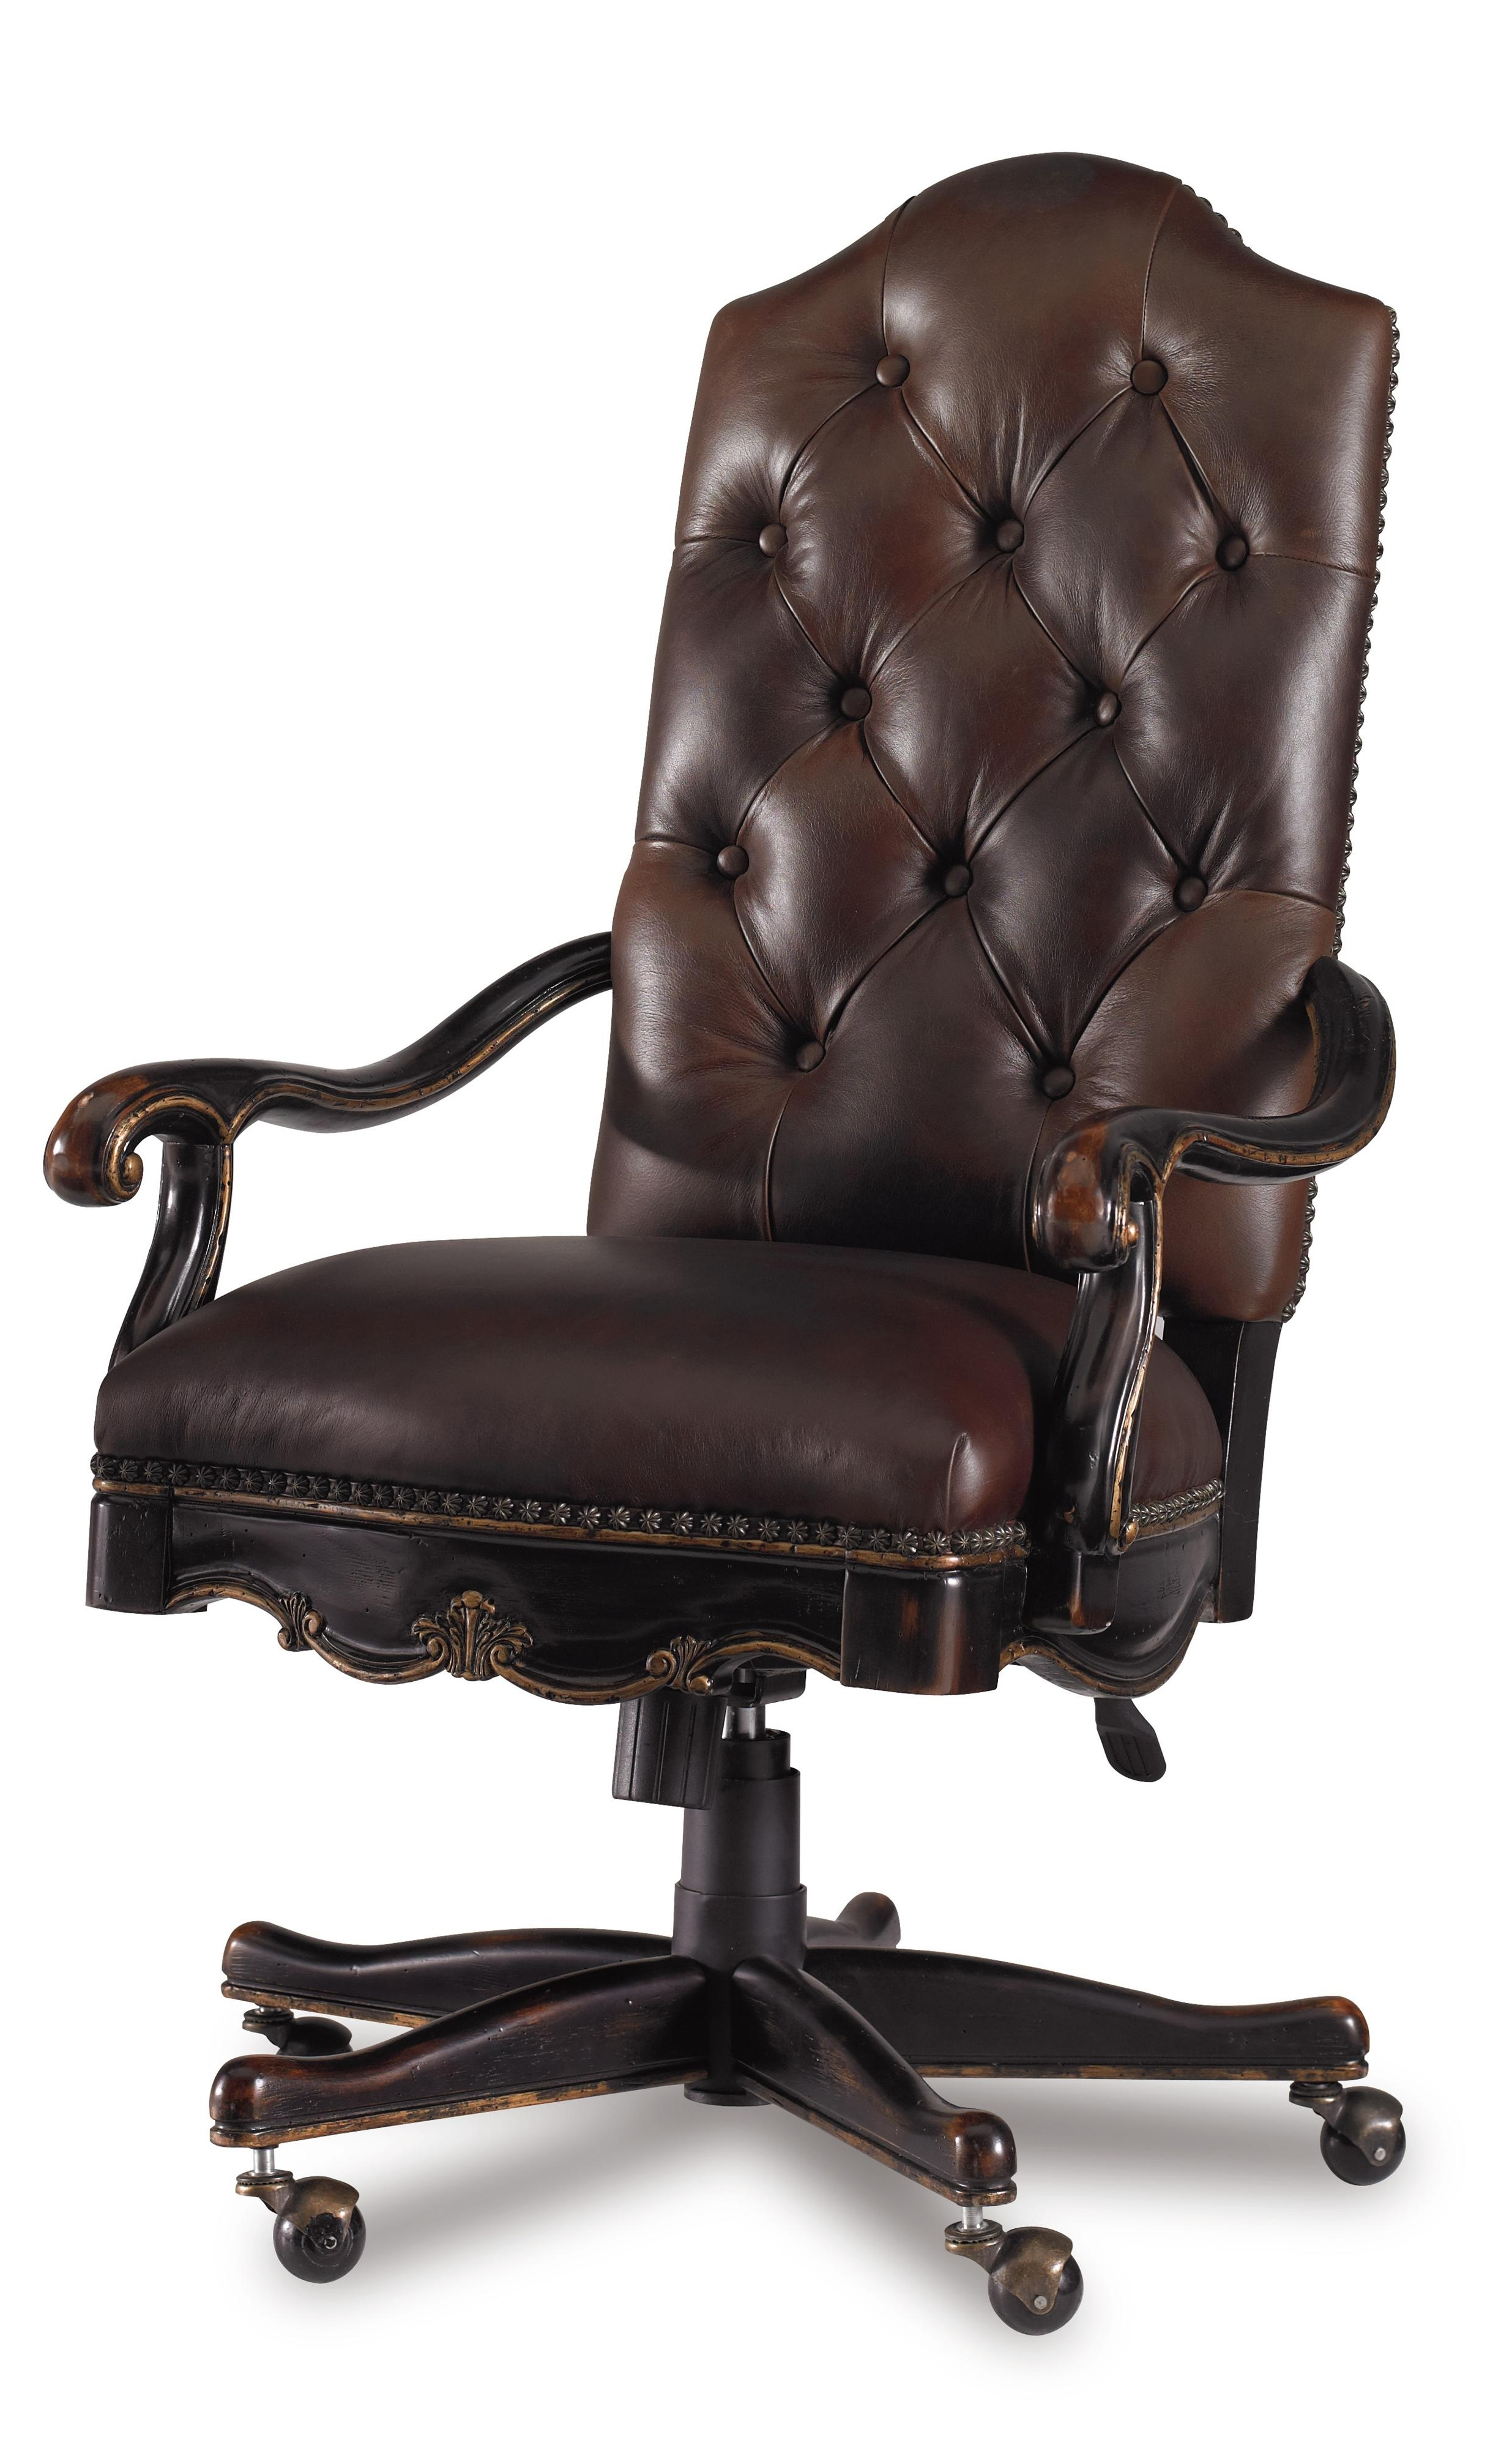 Leather Executive Office Chairs Inside Recent Hooker Furniture Grandover Tufted Leather Executive Office Chair (View 9 of 20)